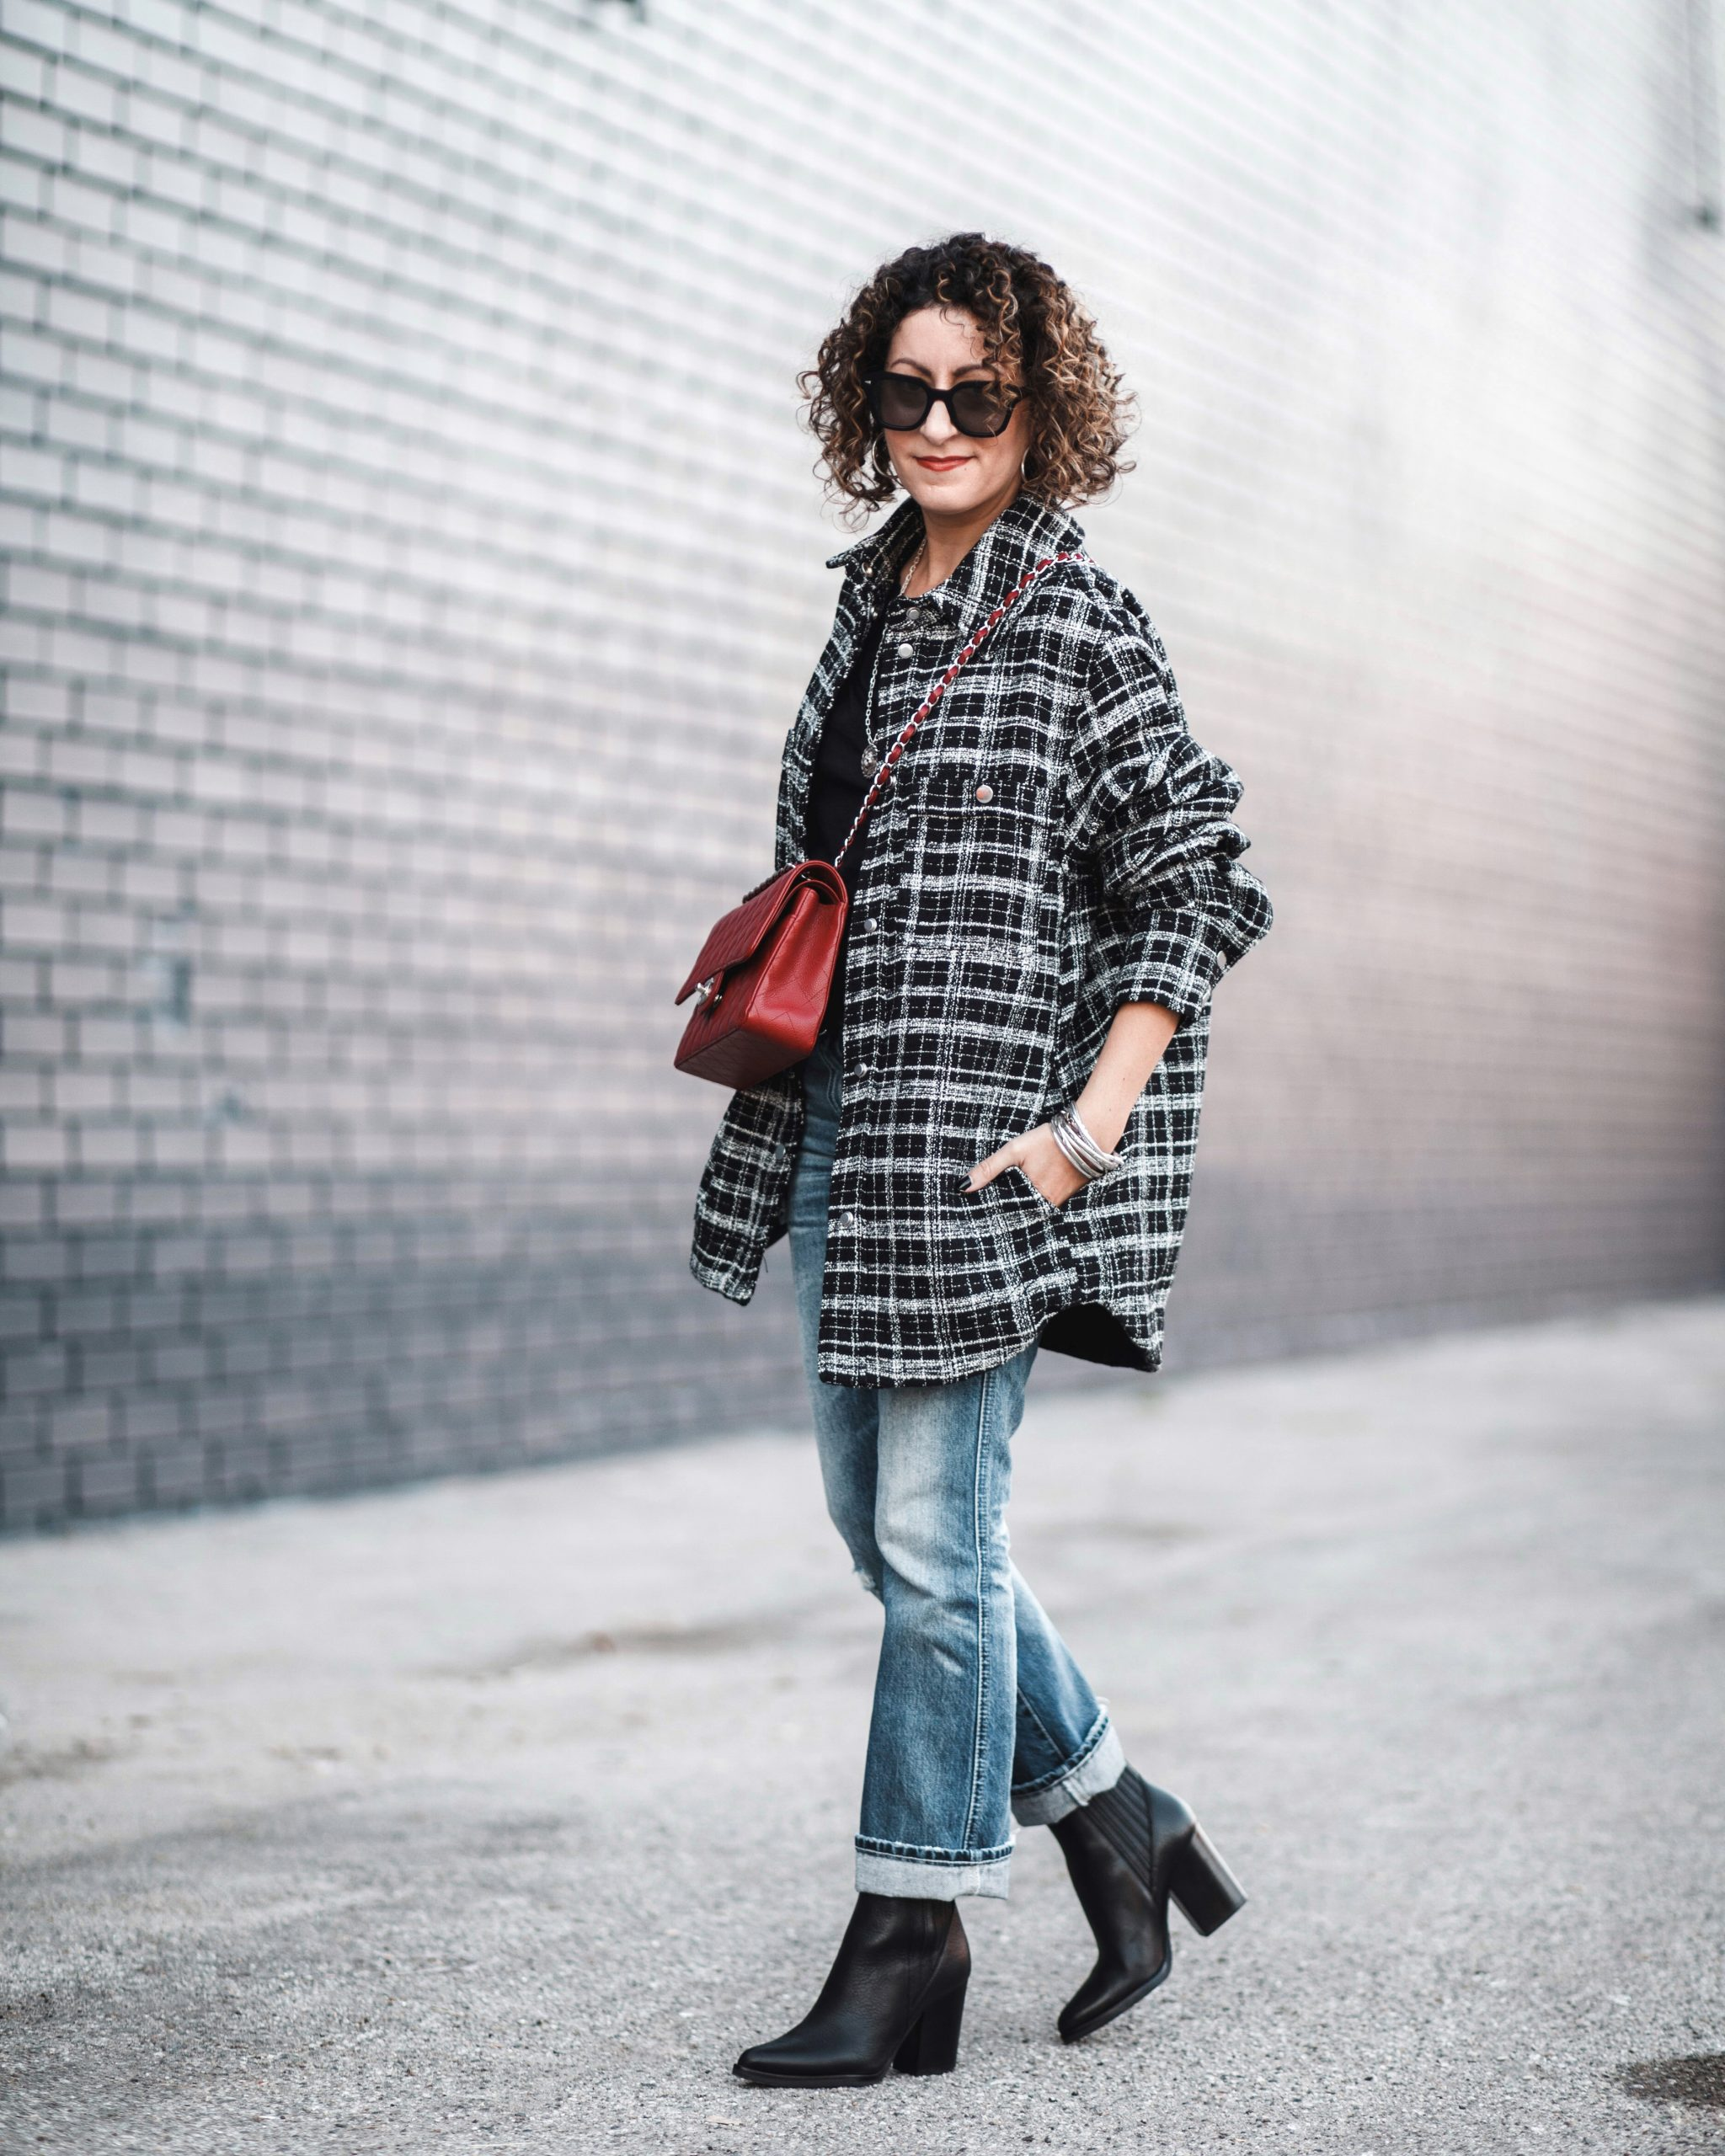 Plaid Shirt Jacket (& Tips For Styling Oversized Items)